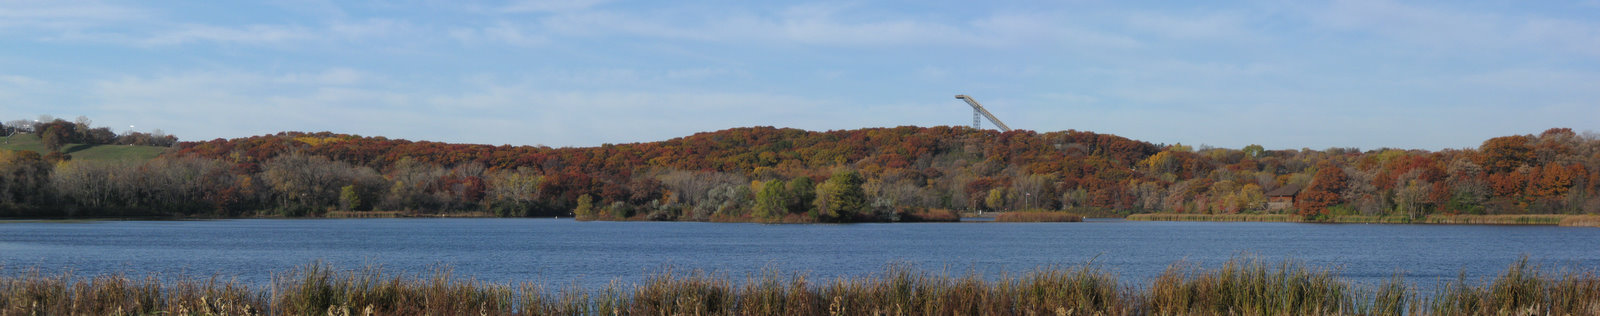 Hyland Park Ski Hills in Fall Colors